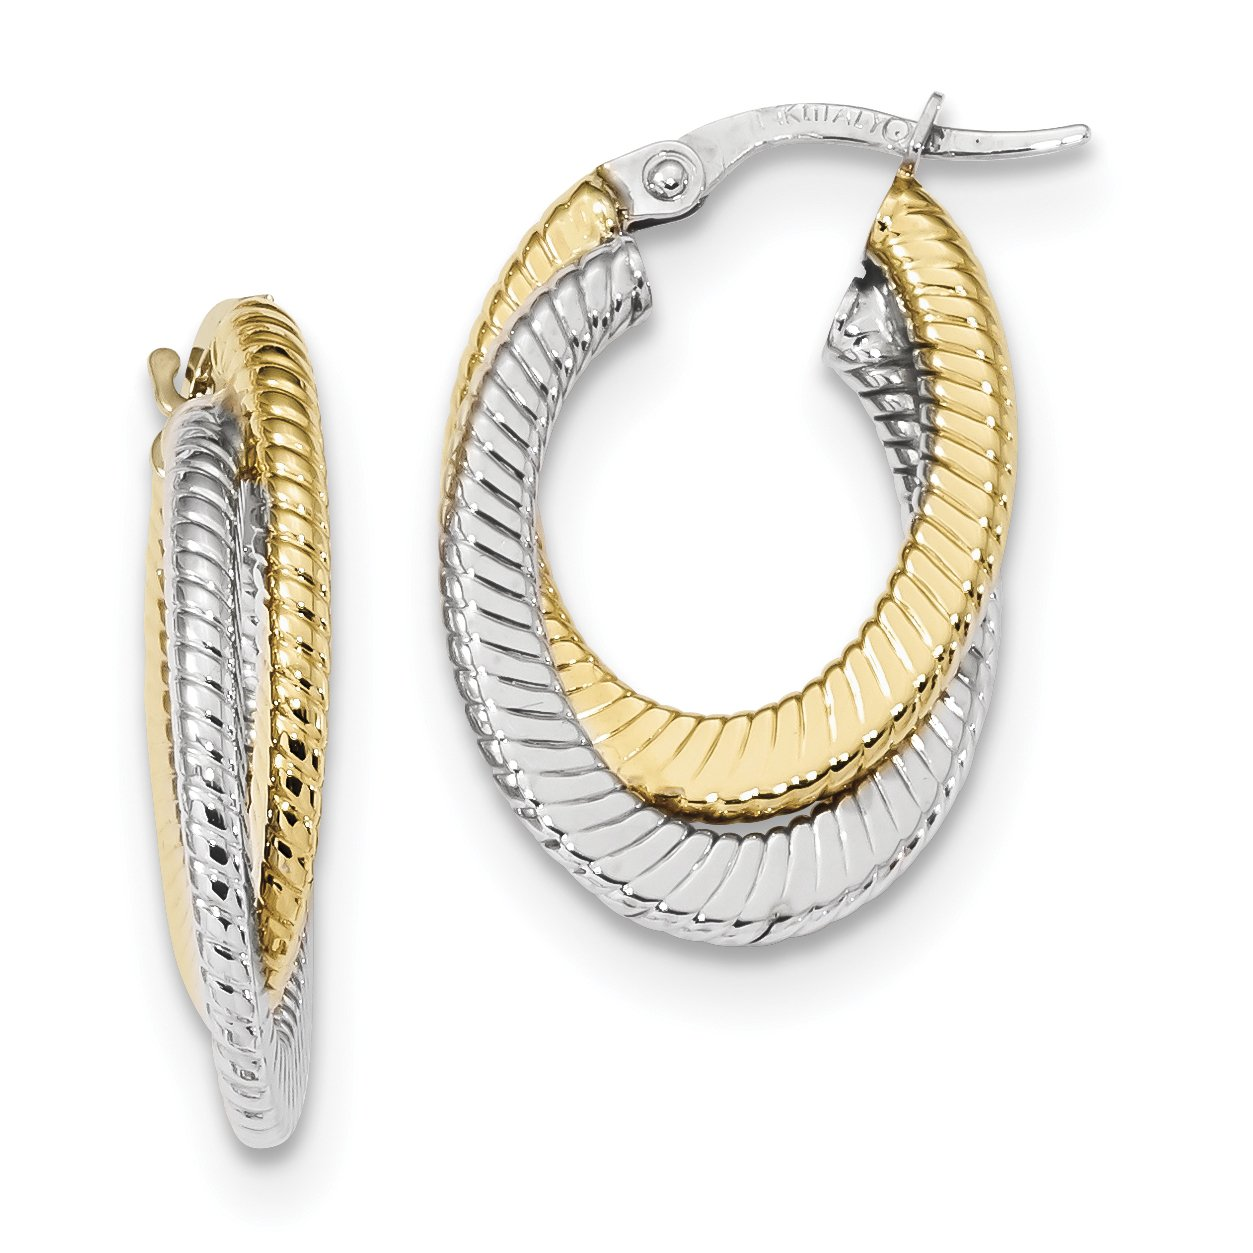 ICE CARATS 14k Two Tone Yellow Gold Textured Double Oval Hoop Earrings Ear Hoops Set Fine Jewelry Gift Set For Women Heart by ICE CARATS (Image #1)